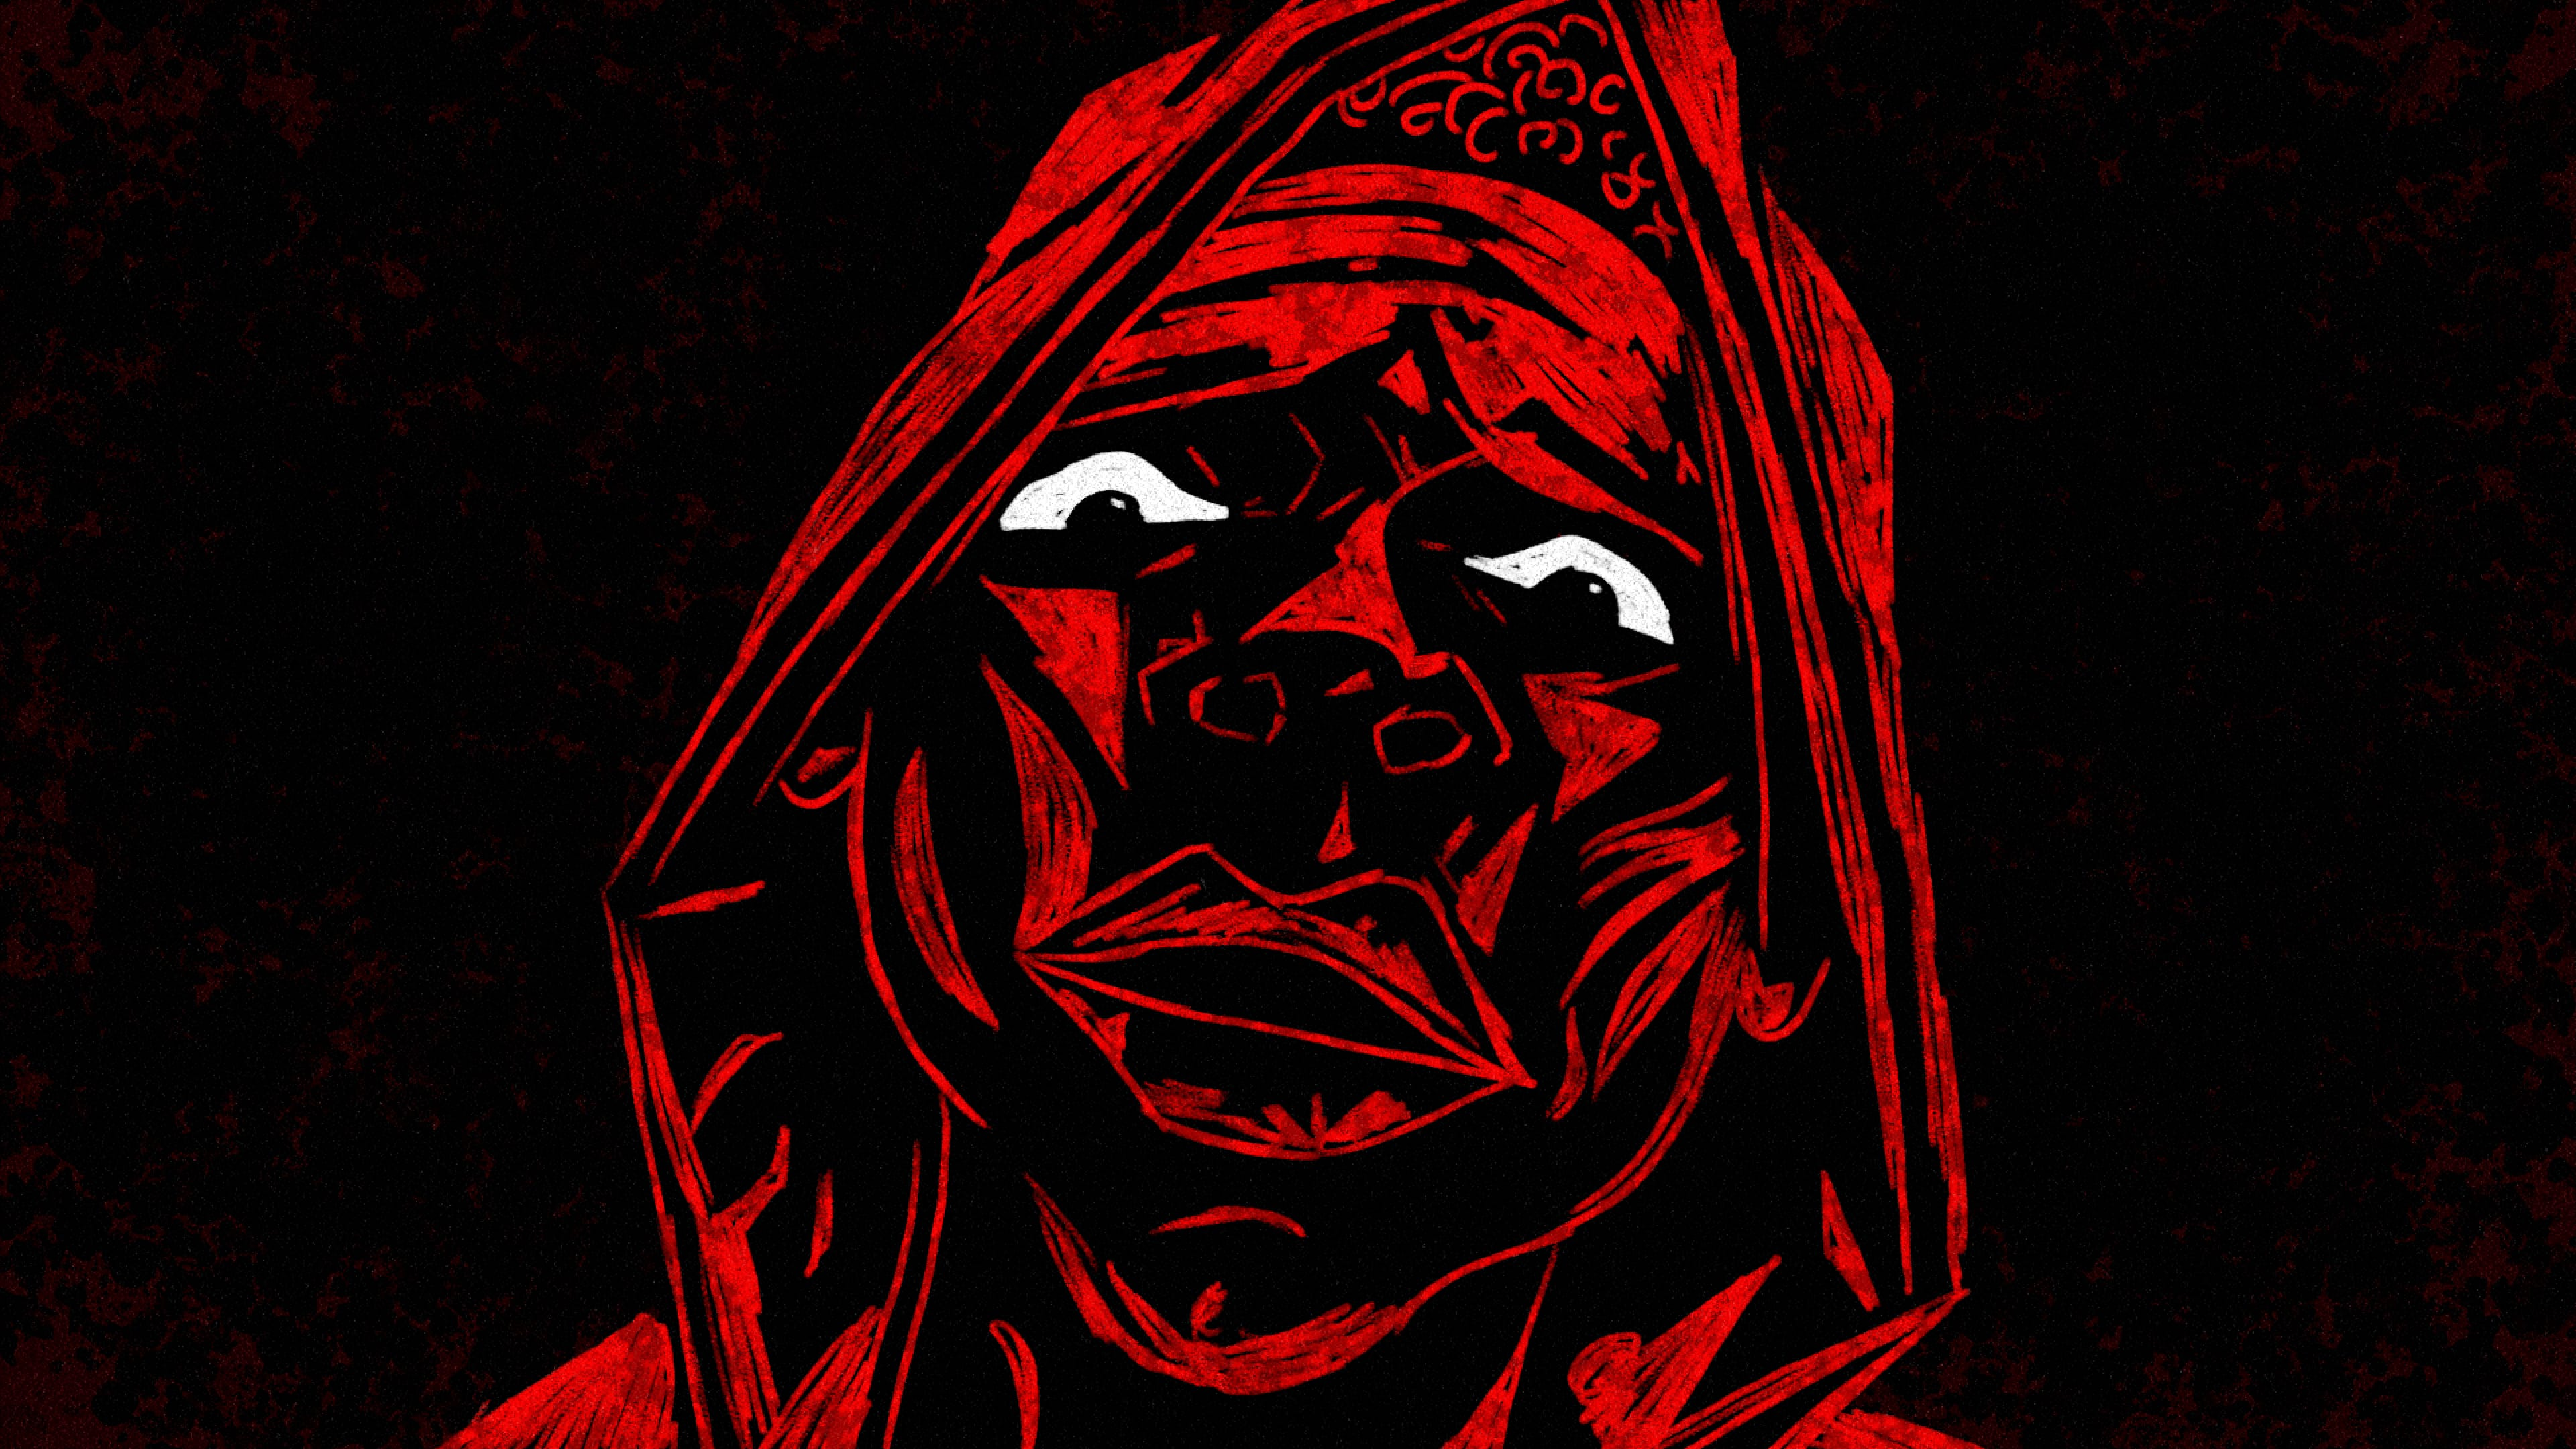 "An illustration by Molecule VFX shows a face against a black background, details etched in a bright red. The eyes of the individual are particularly piercing, with black irises set against bright whites. In the film, the red light cast on this figure comes from the car of an assailant. The narration over the animation goes: ""Now Black lives gettin' robbed by wannabe cops."""